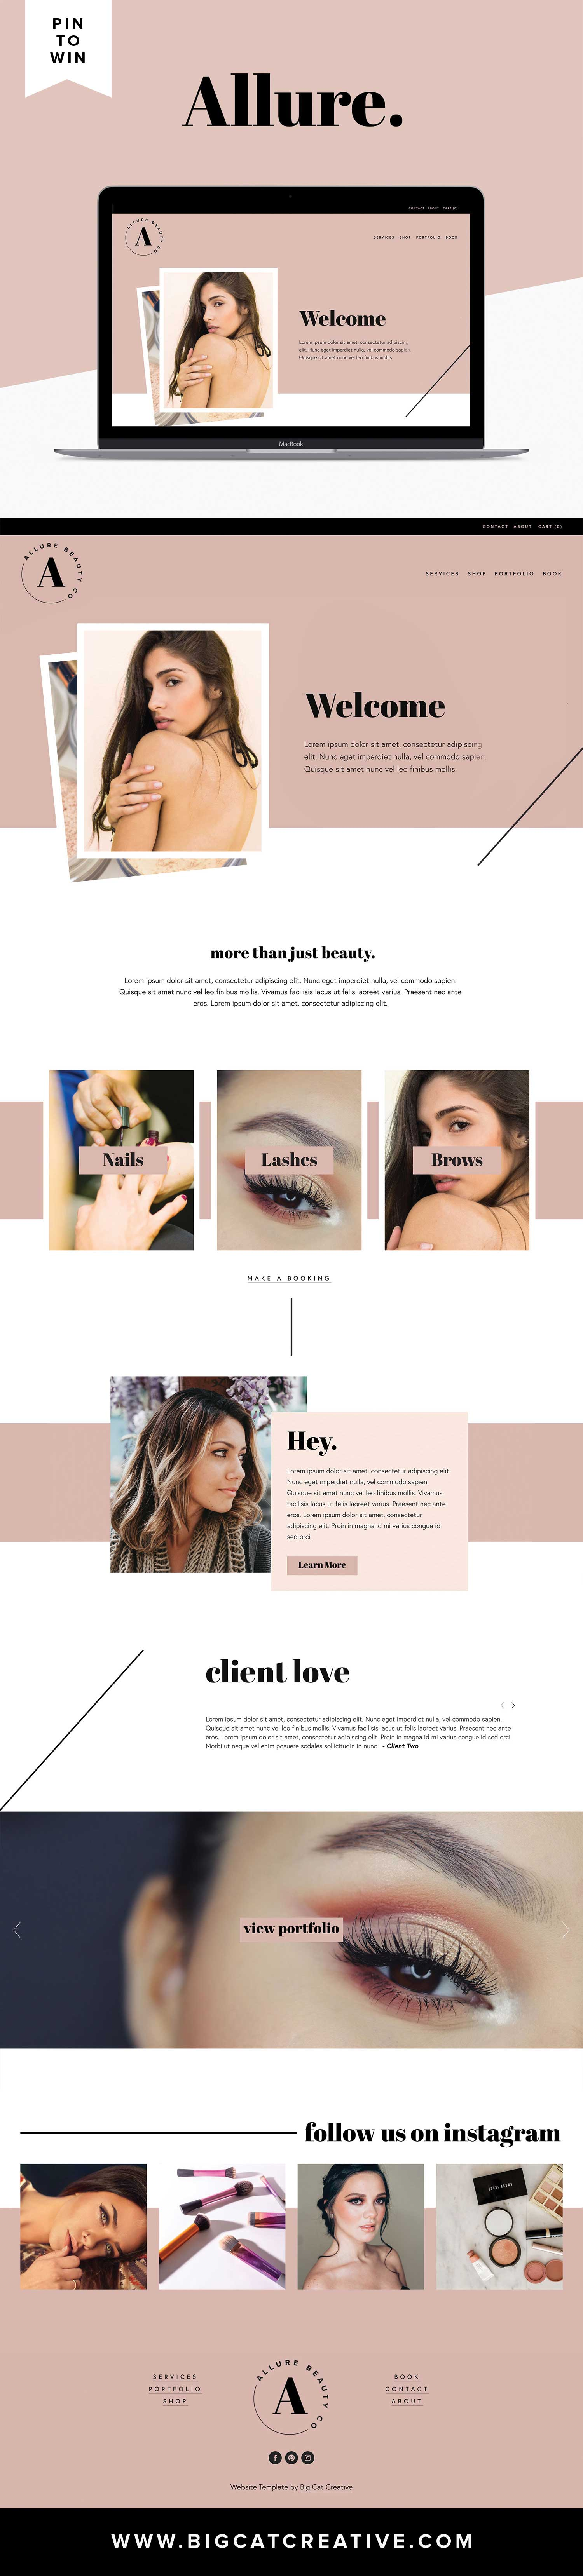 PIN TO WIN! ALLURE Squarespace Template by Big Cat Creative is LIVE - Allure is a modern, feminine and gorgeous Squarespace Template perfect for beautician businesses (hair stylists, lash experts, browticians, manicurists etc) or any service based or small business.  #squarespace #template #webdesign #design